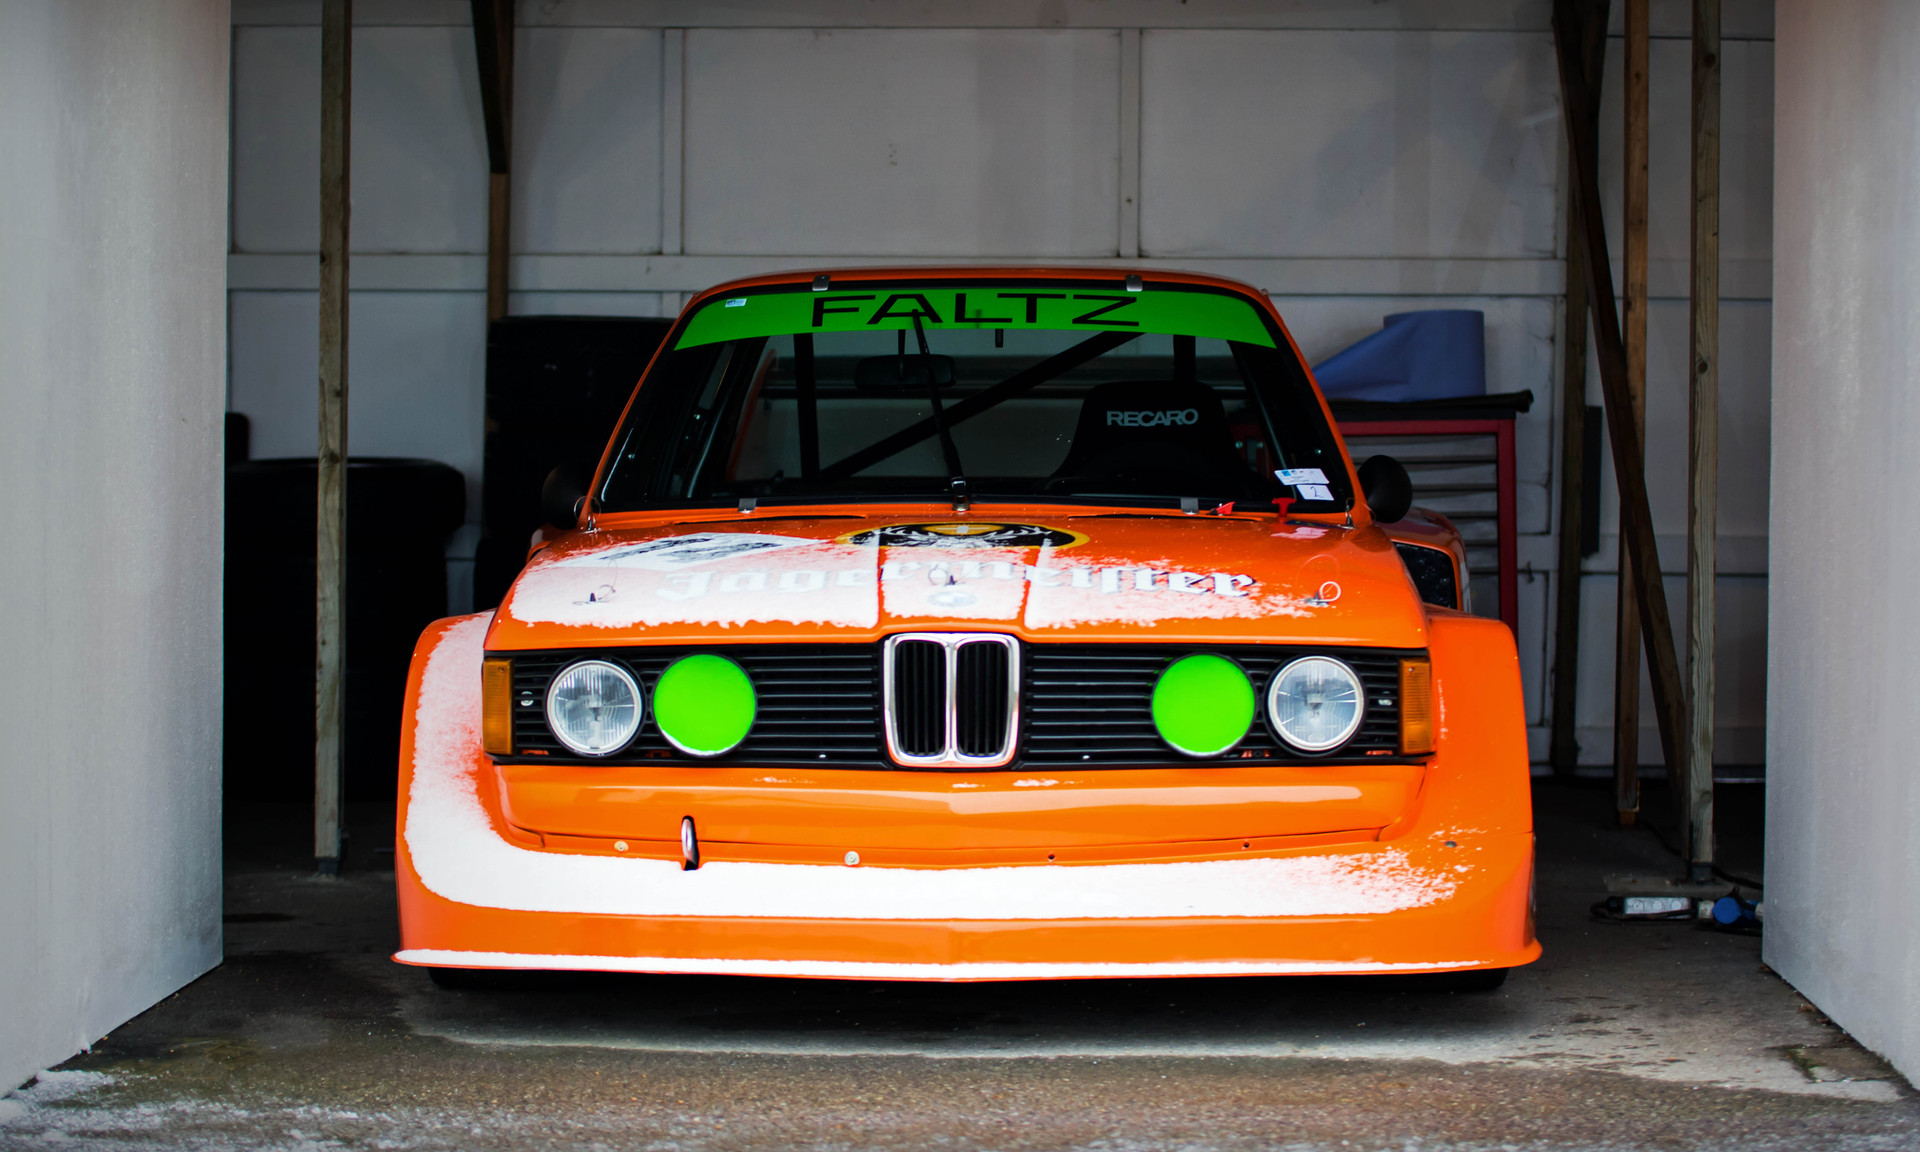 Hans Stuck's 1977 Jaegermeister BMW 320 Group 5 Turbo at the Goodwood 76MM